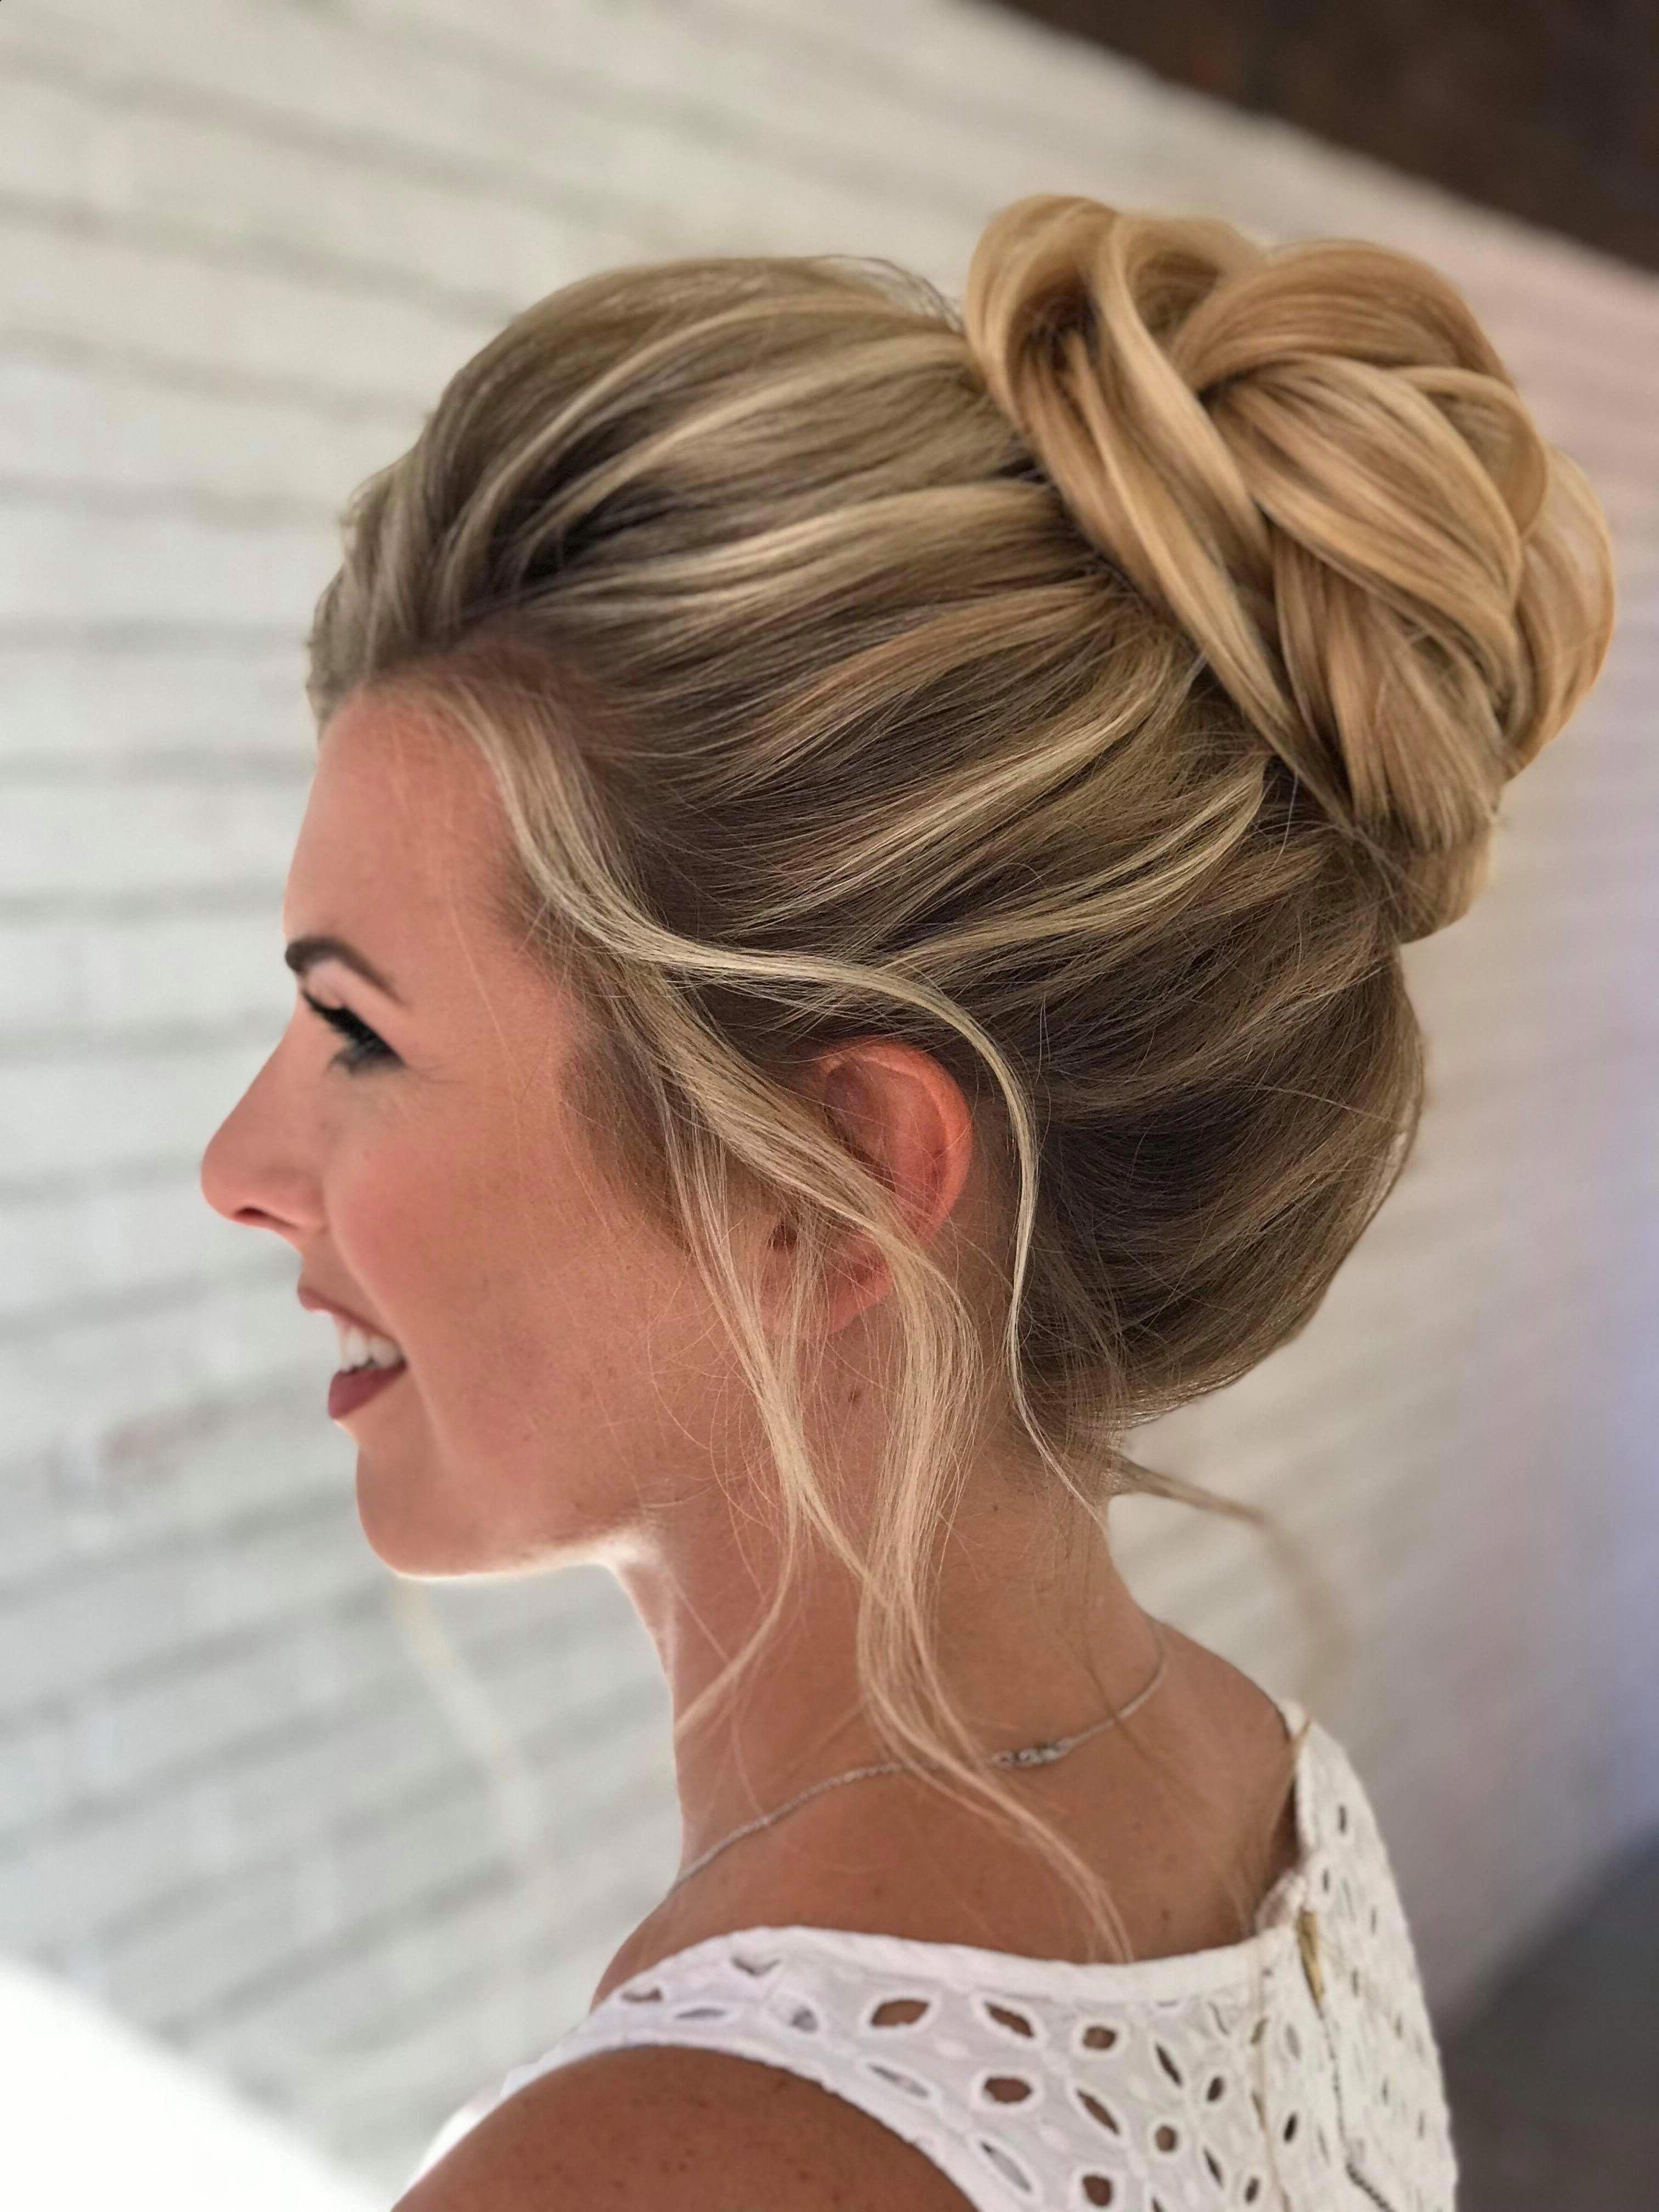 Newest High Bun Hairstyles With Braid With Pinolive's Cute Wedding Style On Wedding Hairstyles (View 13 of 20)